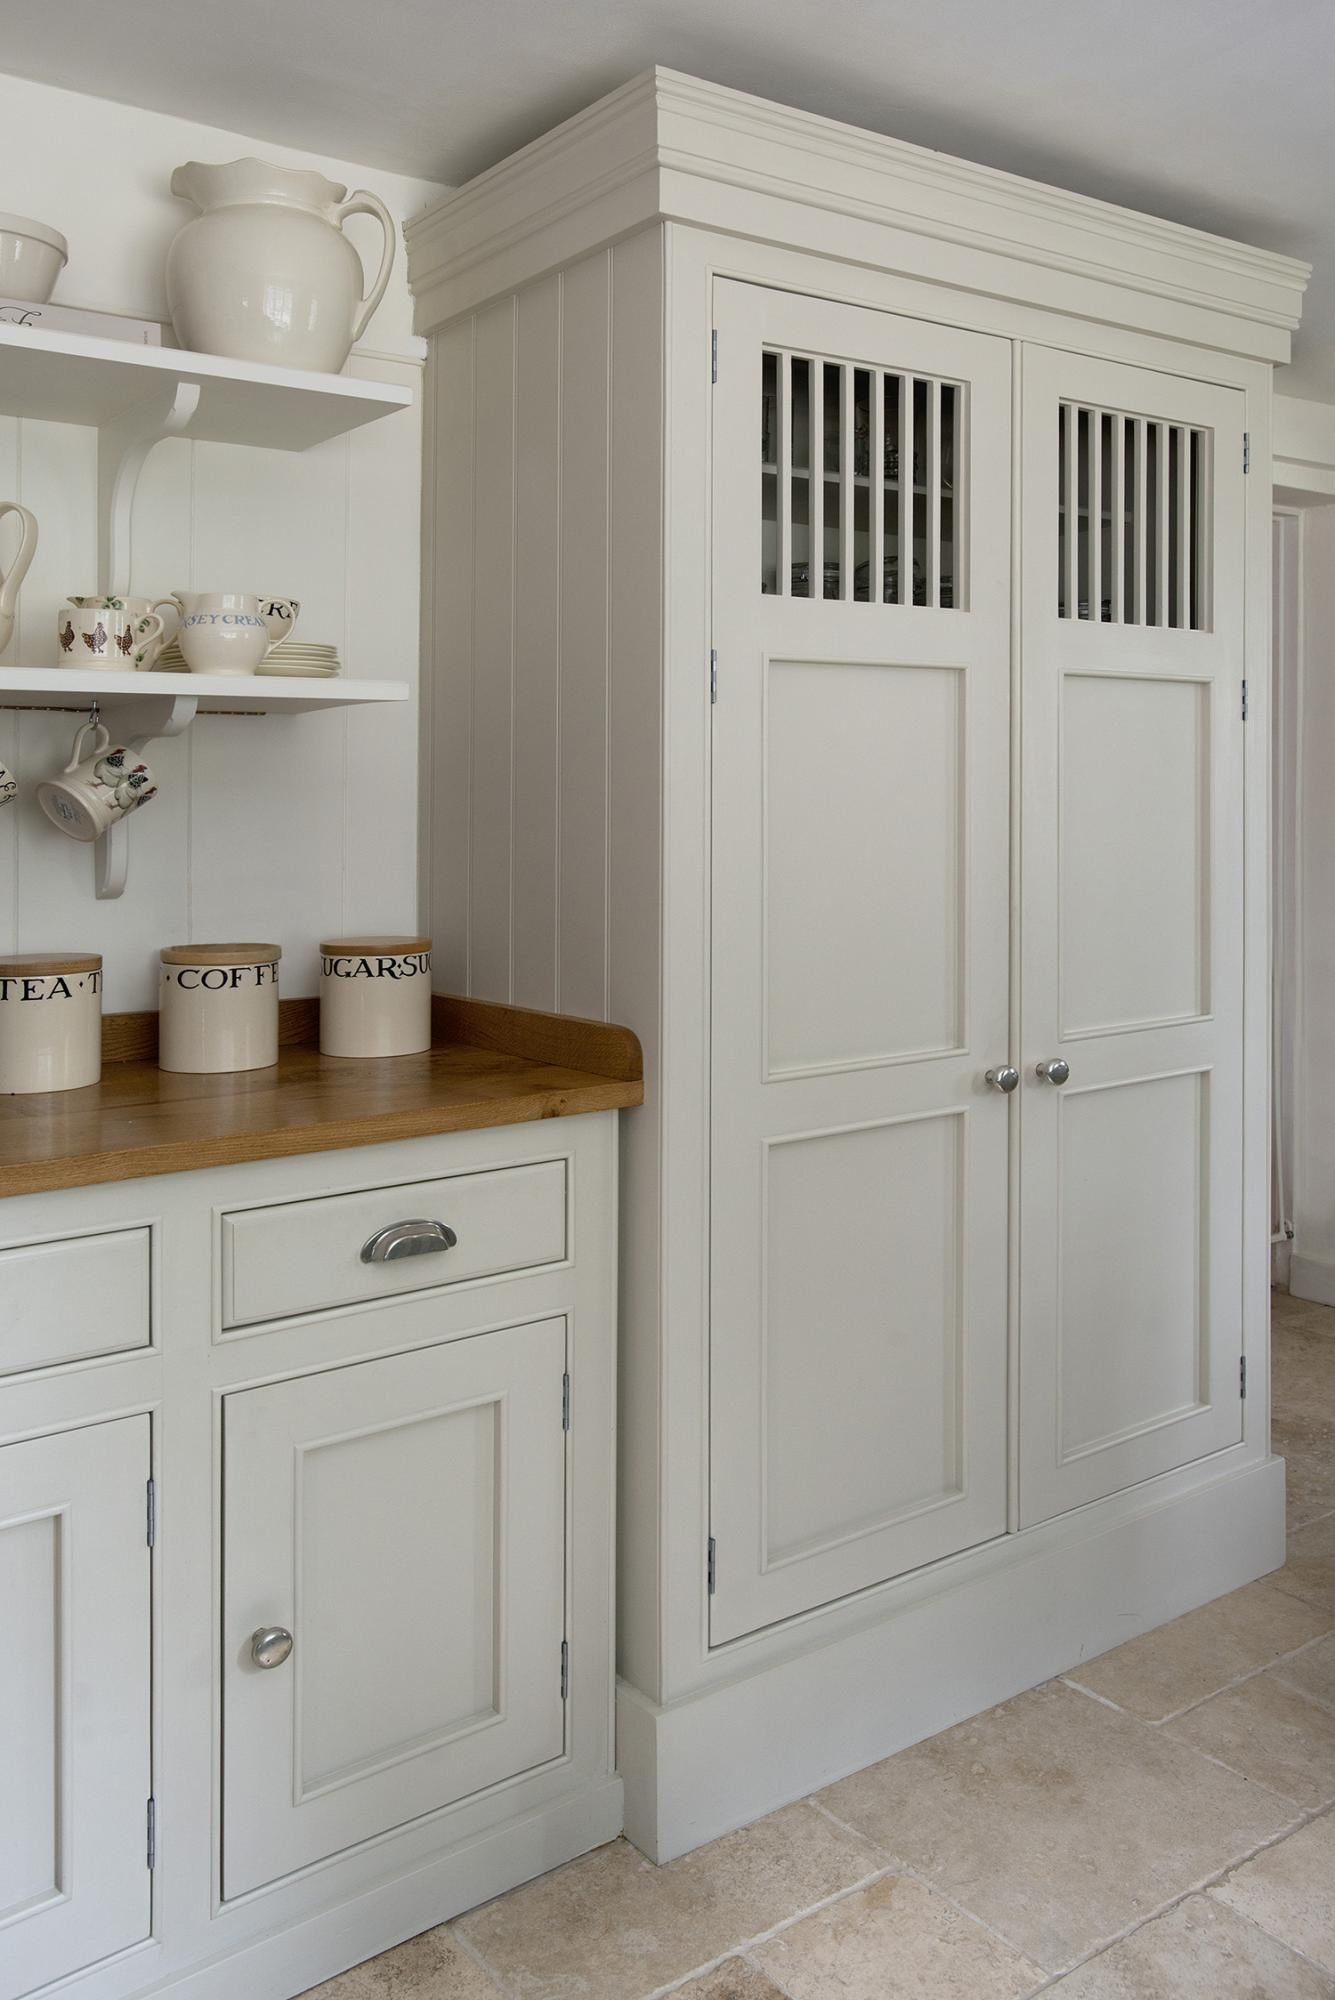 Farmhouse Kitchens for Sussex, Surrey & the South East